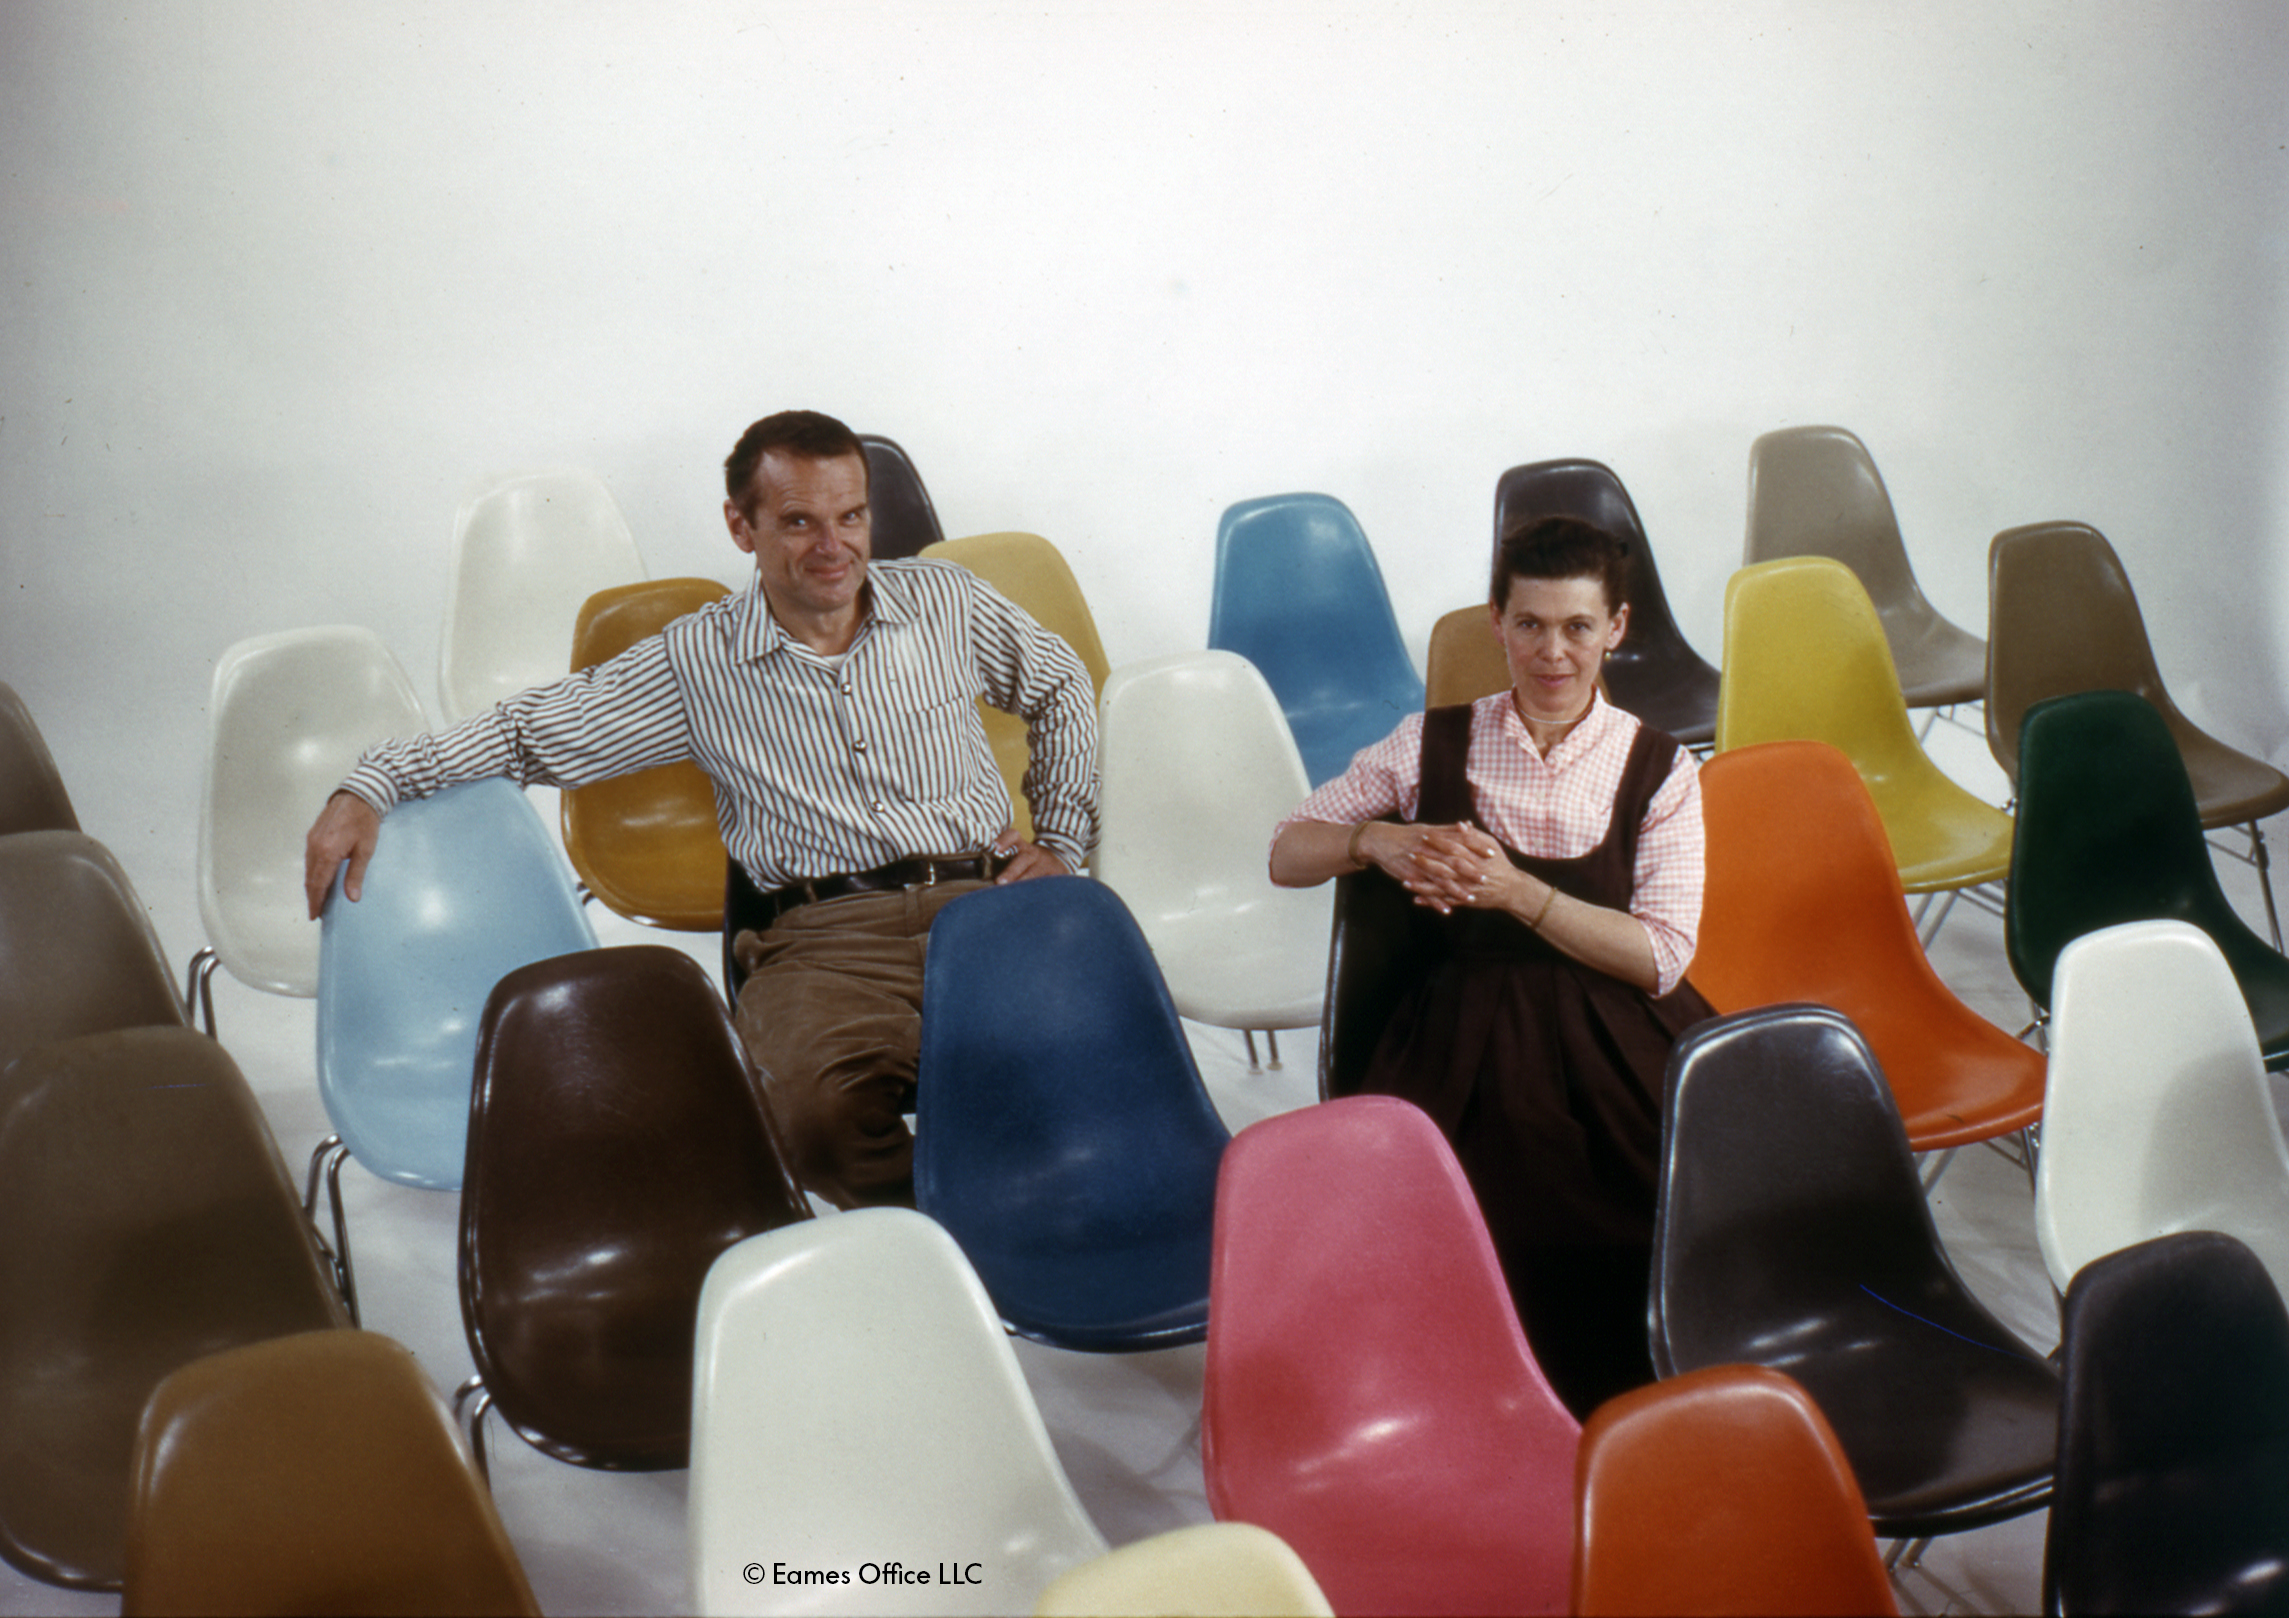 Eames_historical_A6_©Eames Office LLC